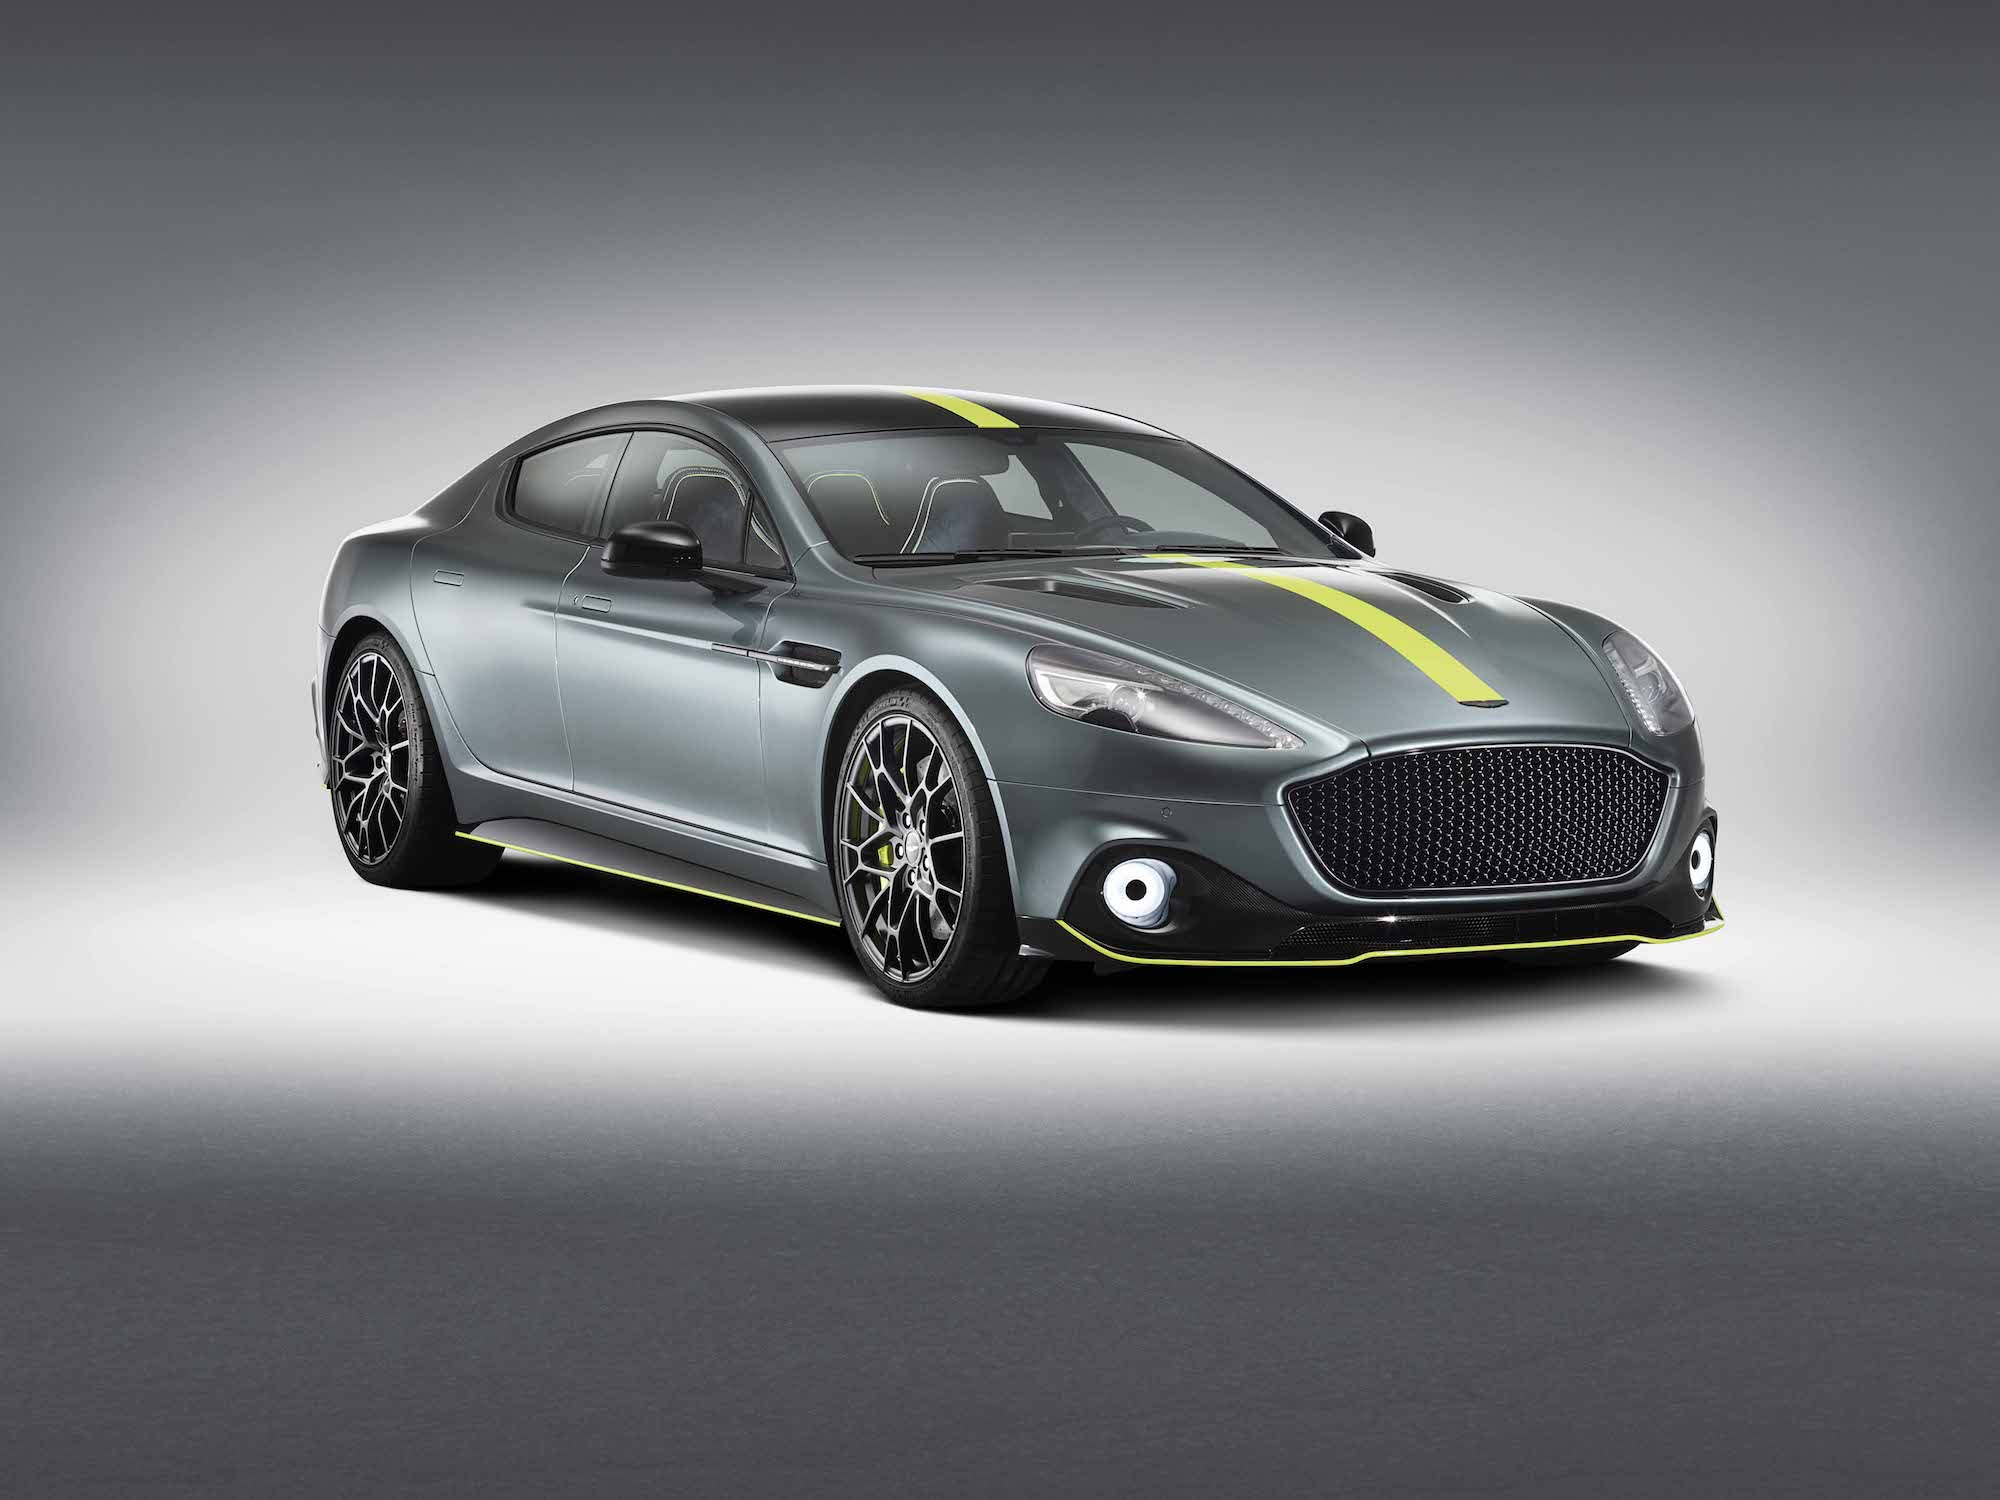 Aston Martin reveals latest limited edition